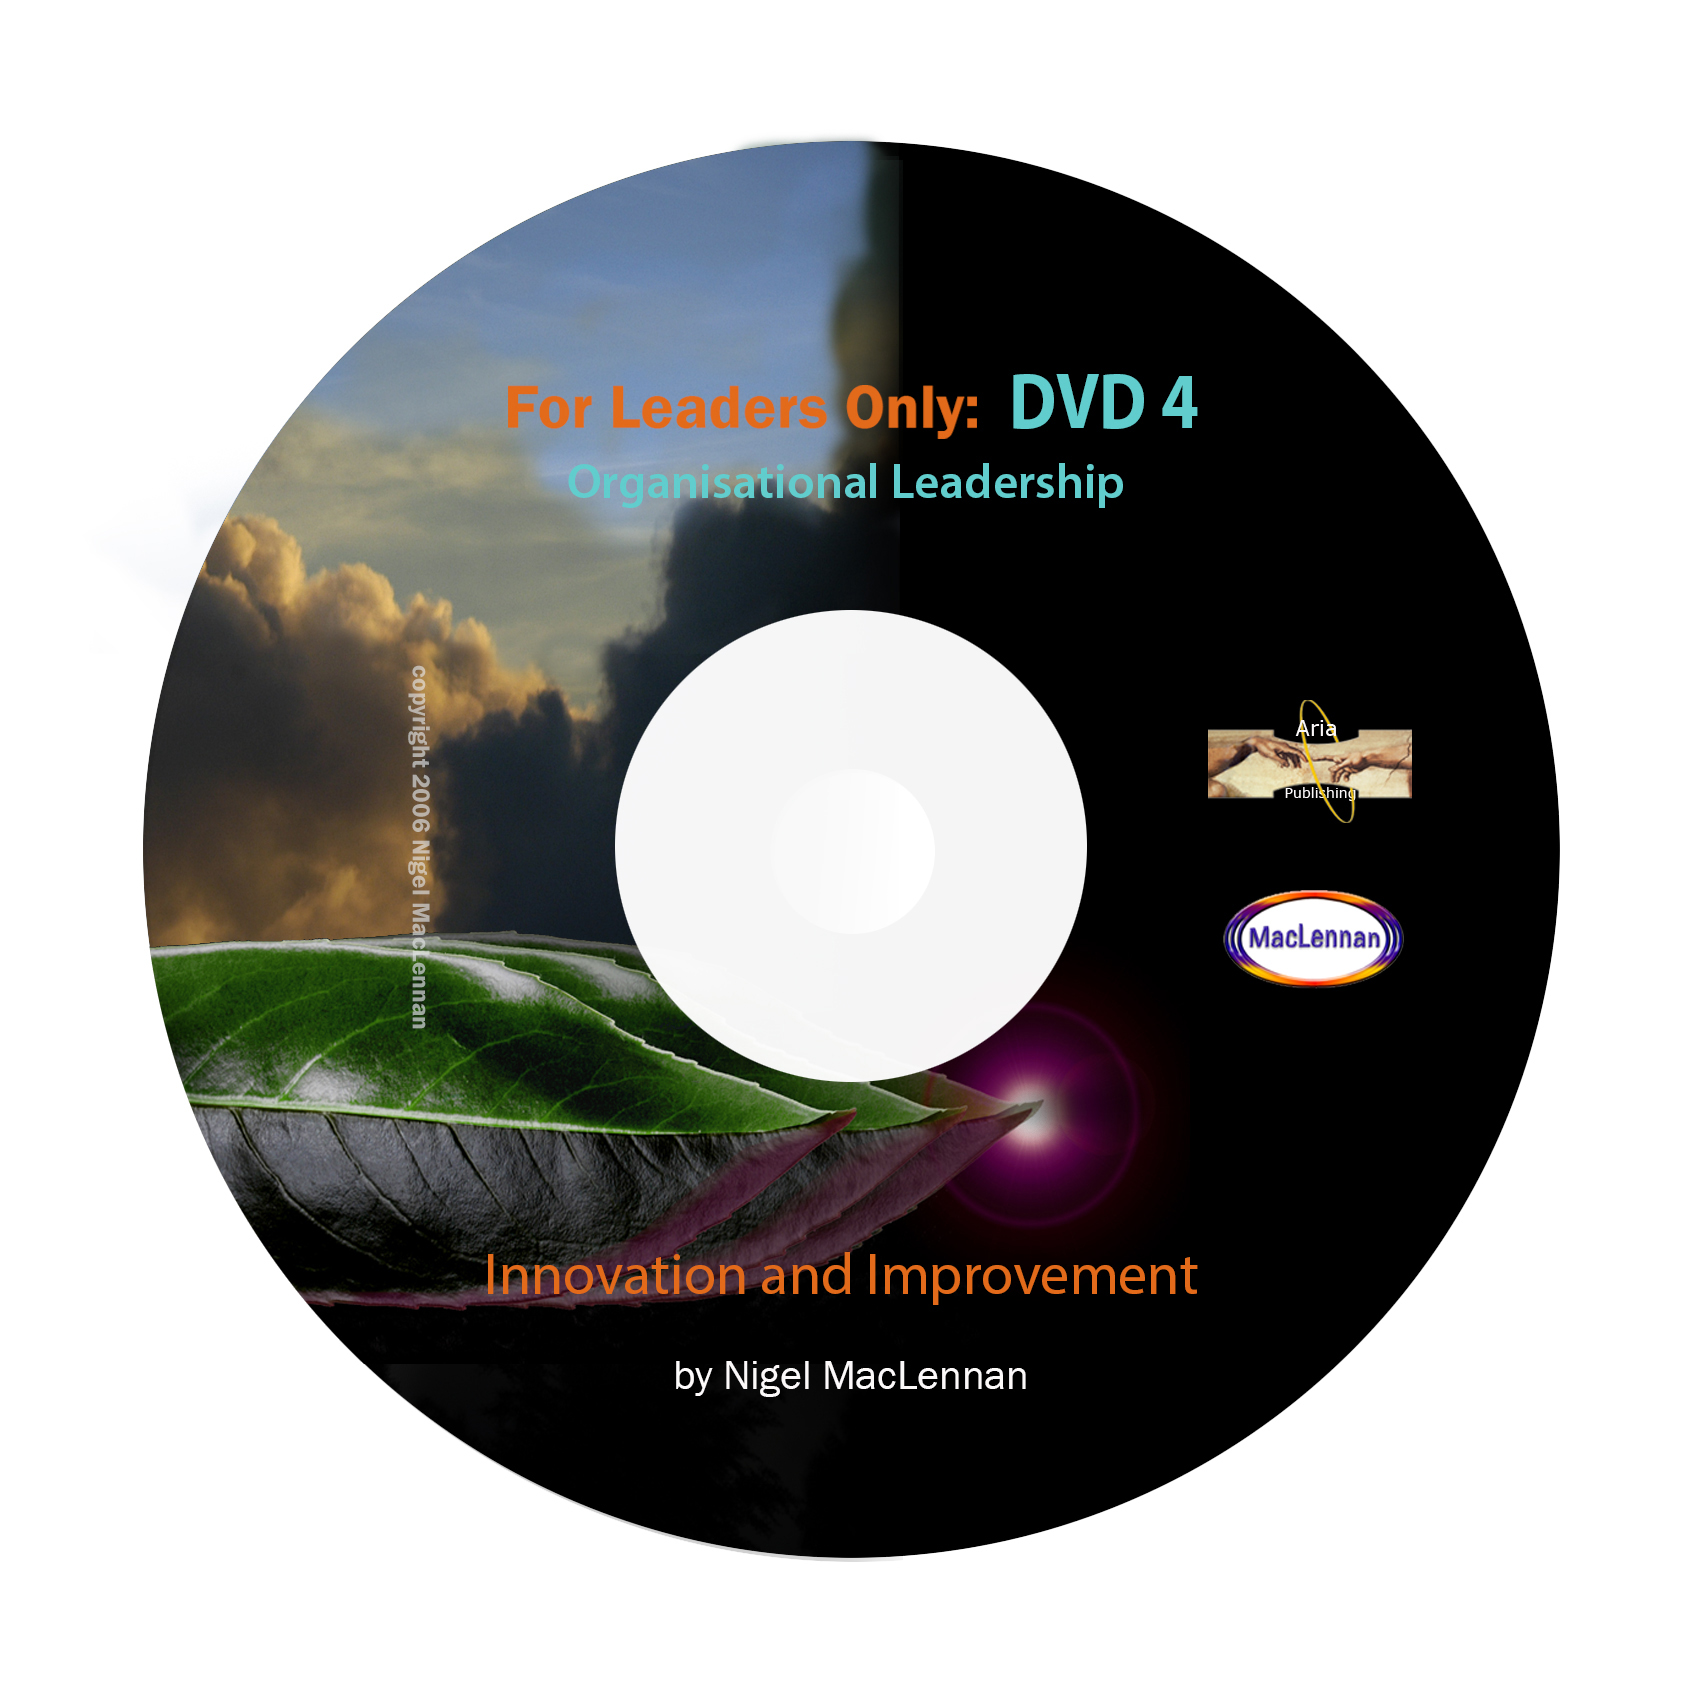 For Leaders Only - Innovation Management DVD